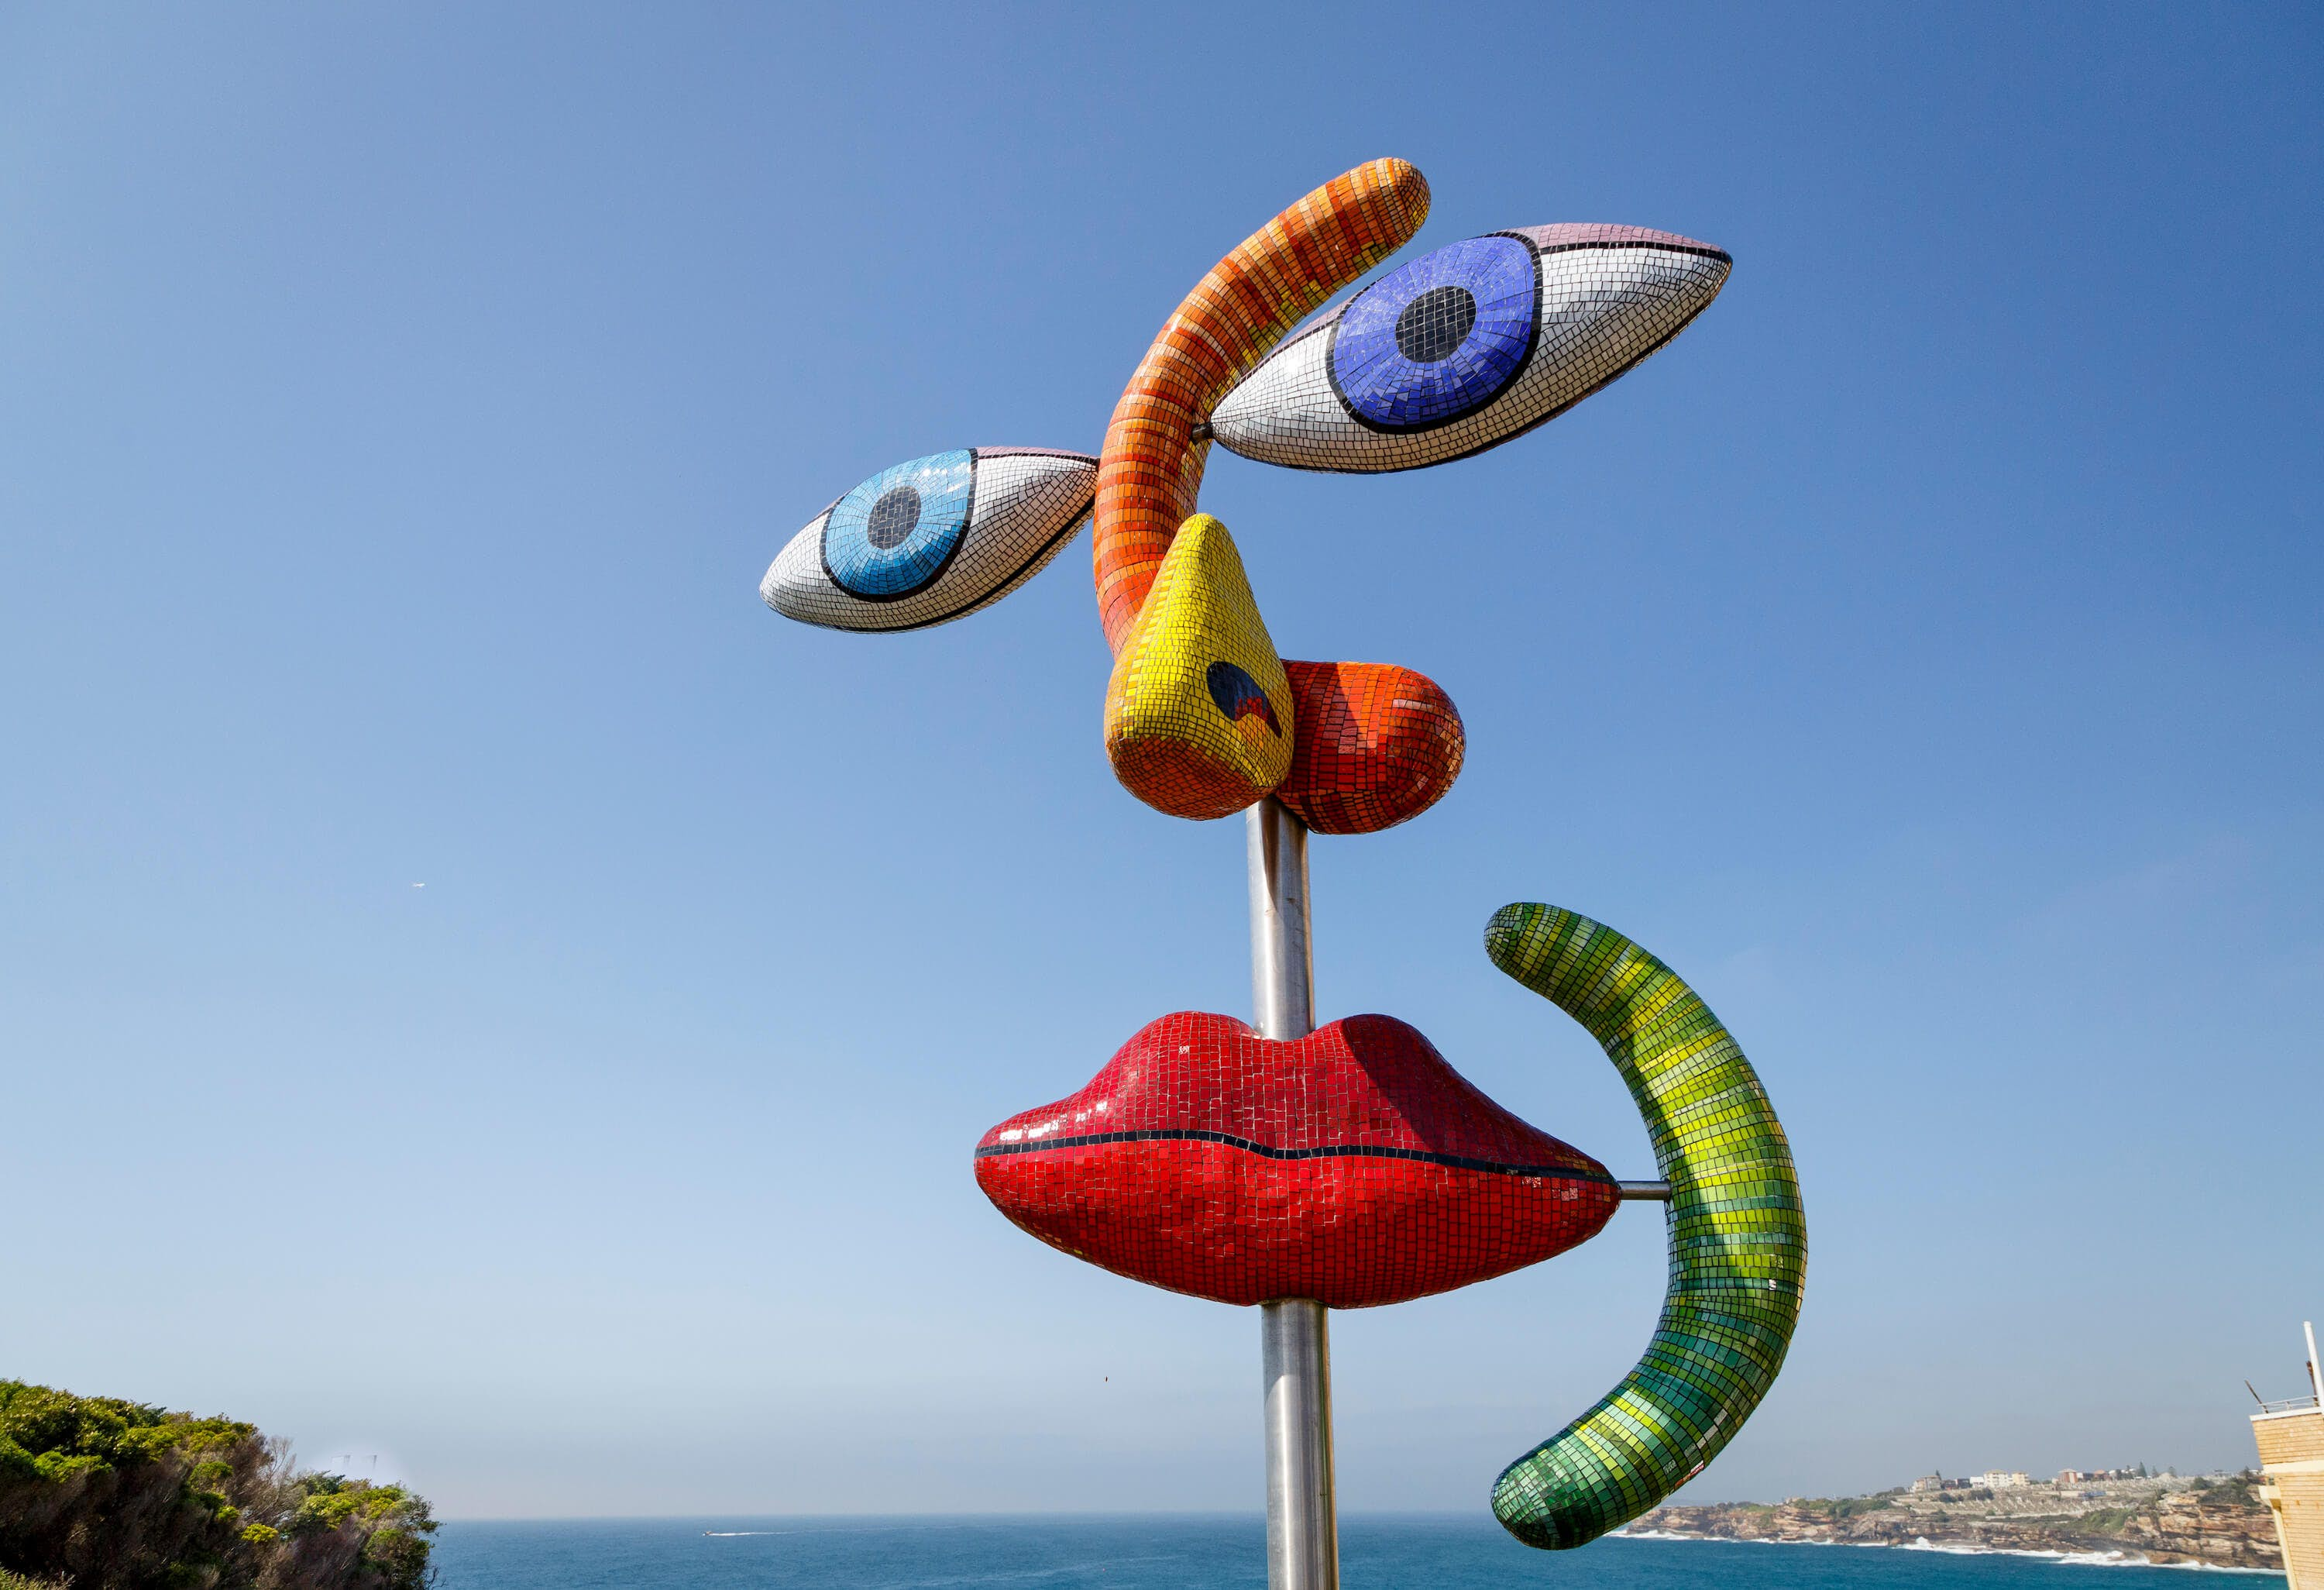 The Face by Deborah Halpern is one of the pieces on display on Bondi Beach. Image by Jessica Wyld